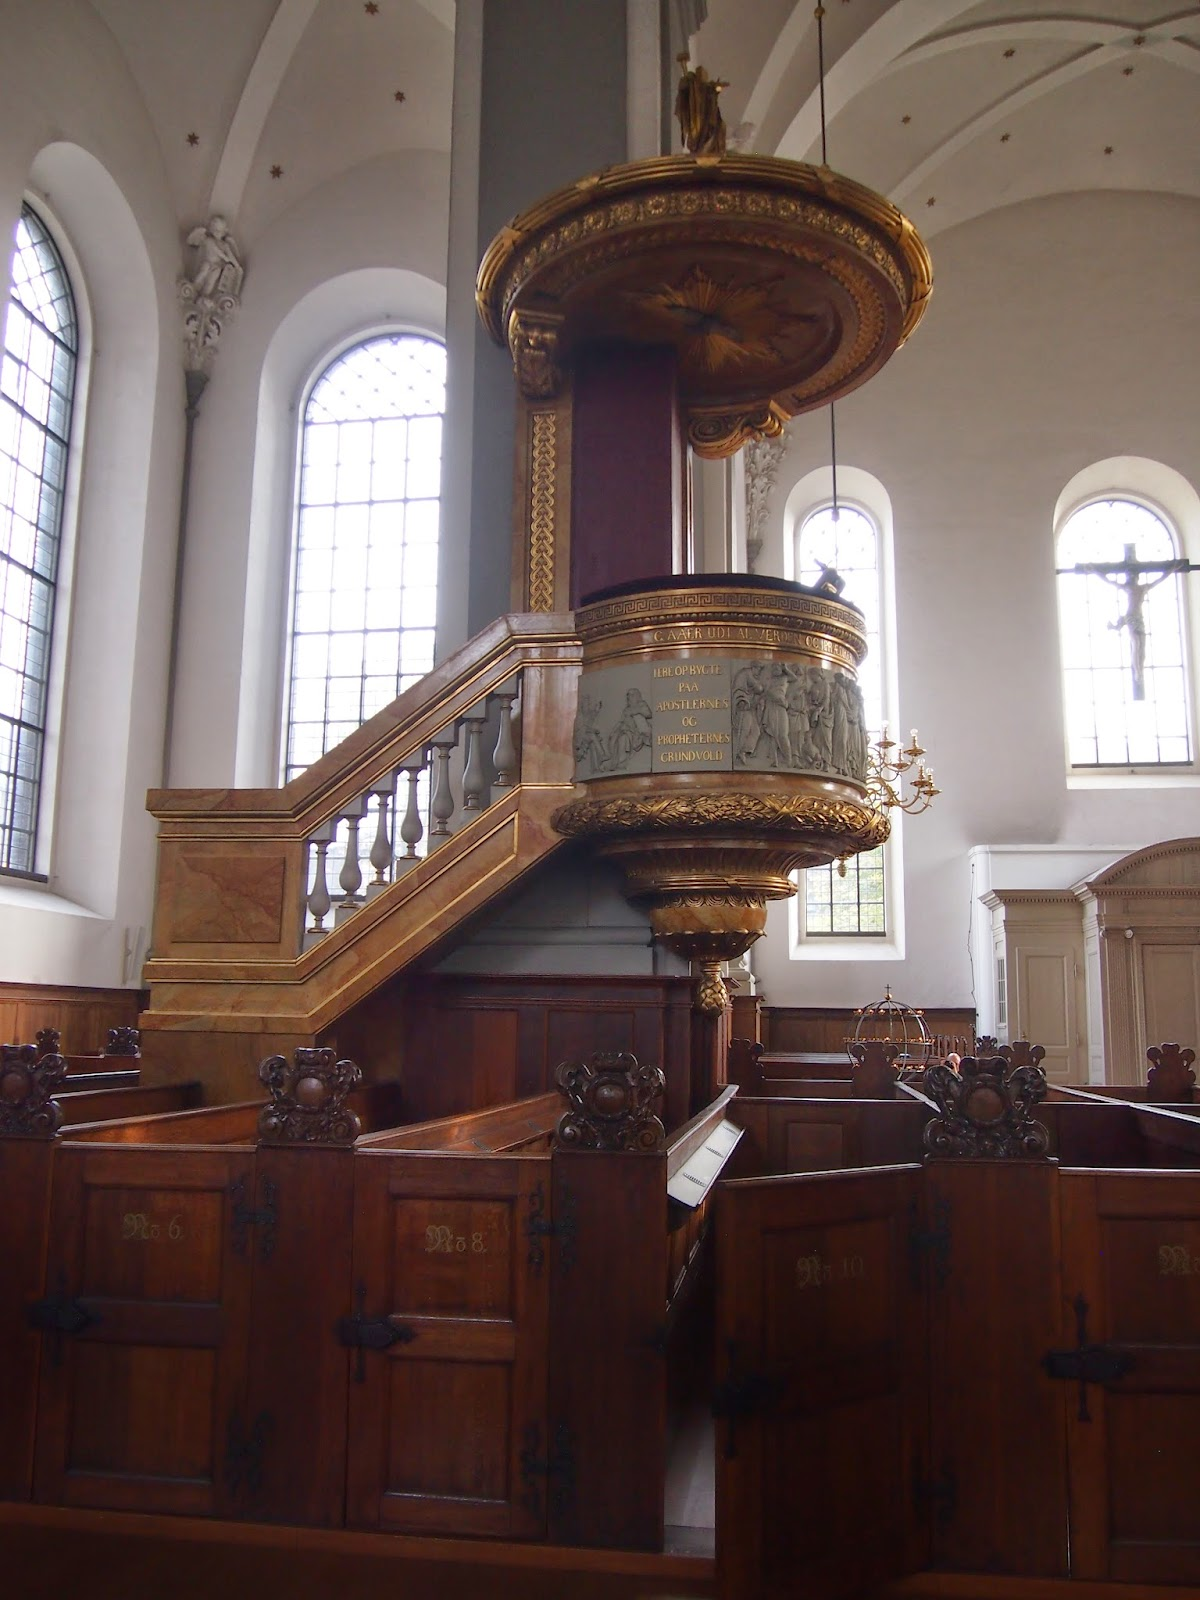 the interior of our saviors church in copenhagen